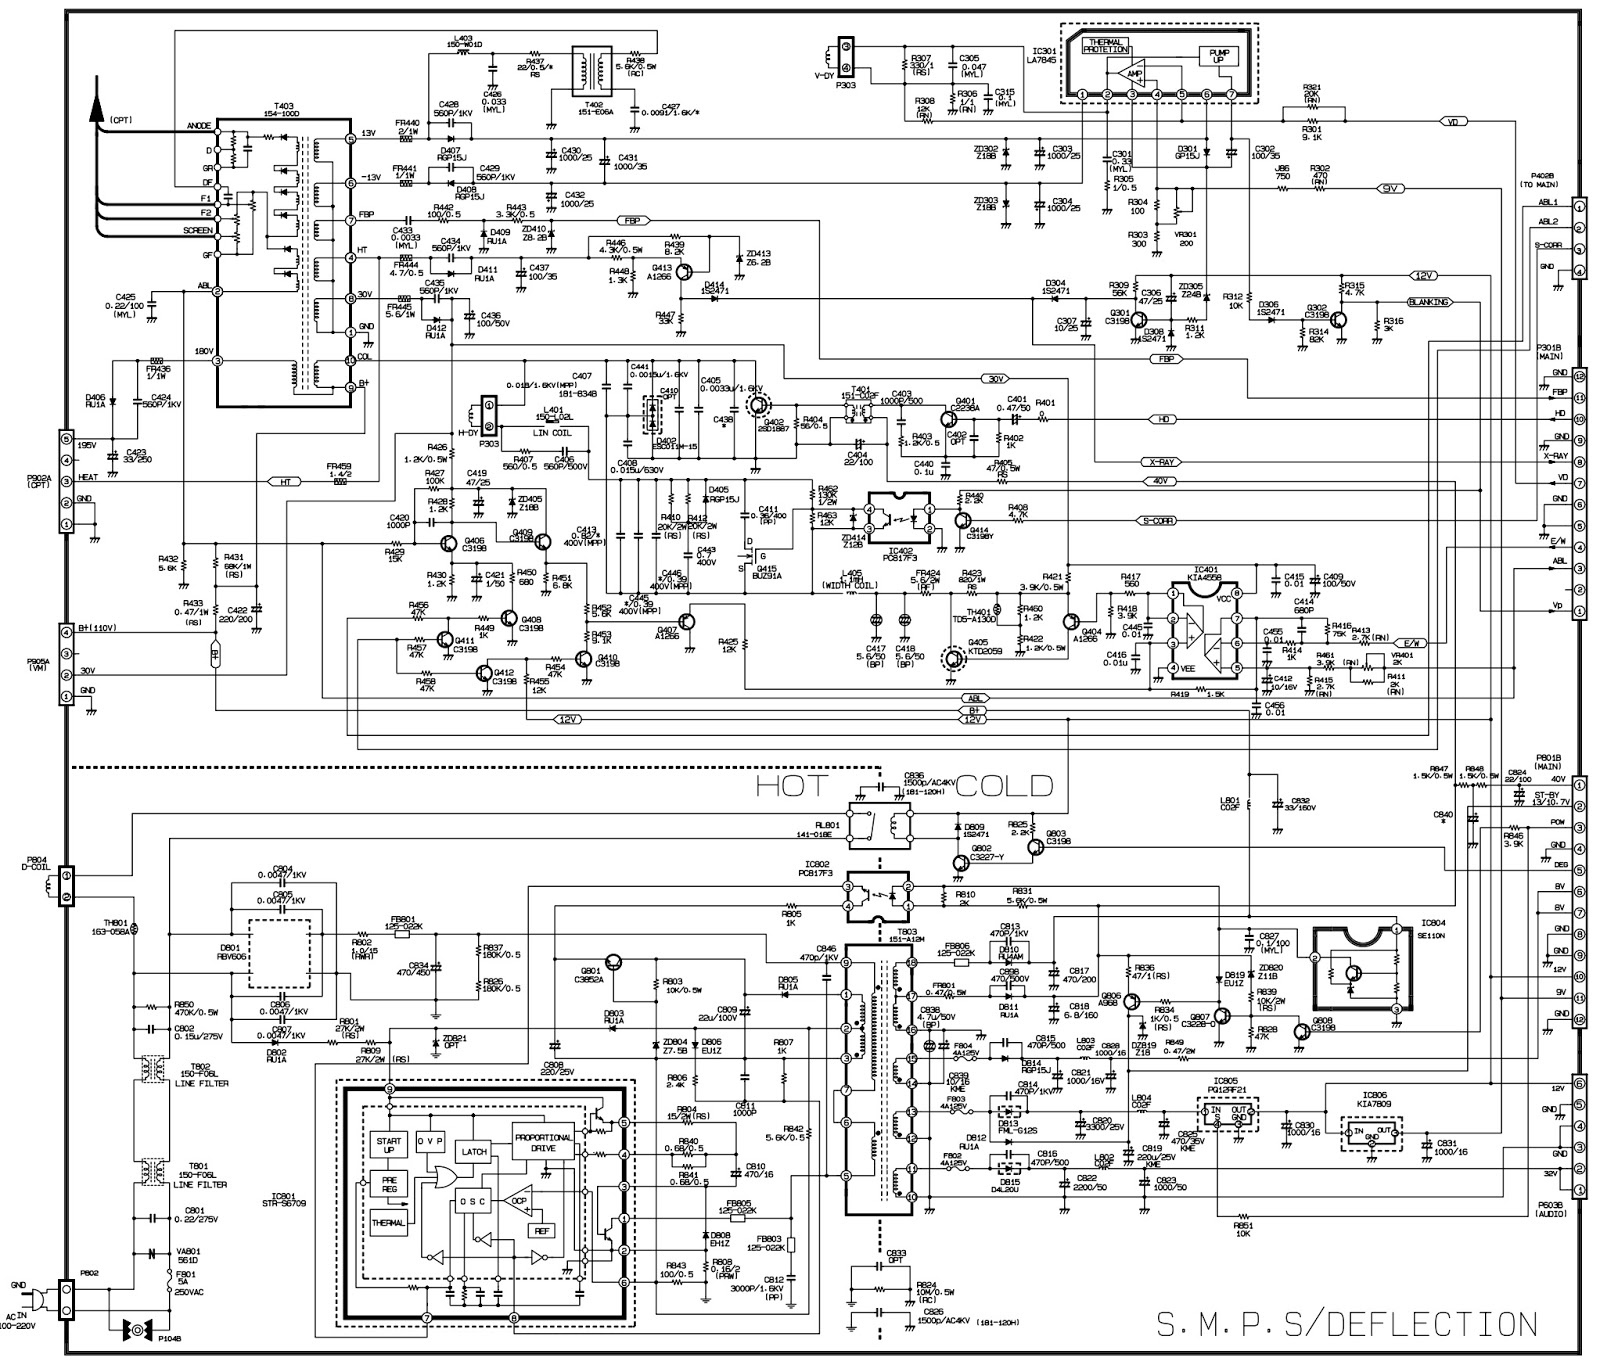 small resolution of wp32a30 lg 32 inch crt tv circuit diagram schematic diagrams lcd tv problem troubleshooting crt tv